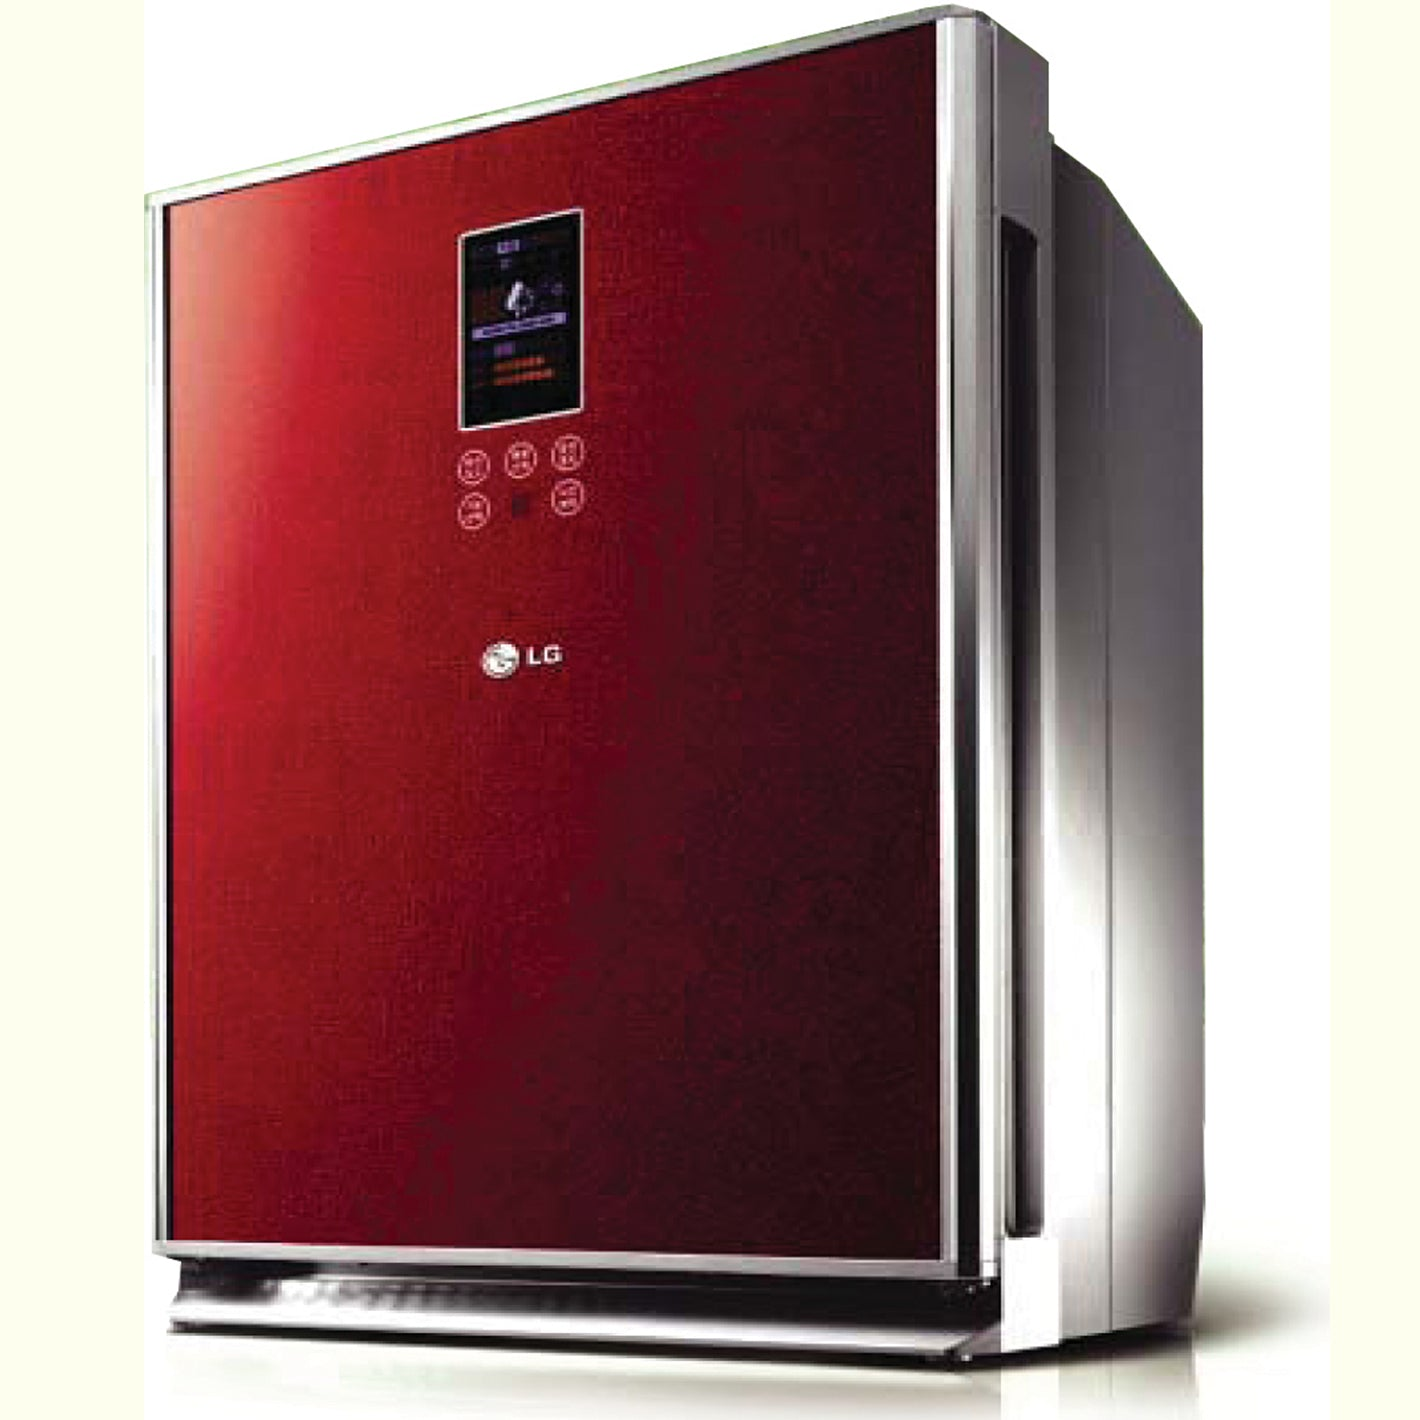 LG Electronics Air Purifier + Shipping (To be added shipping separately)